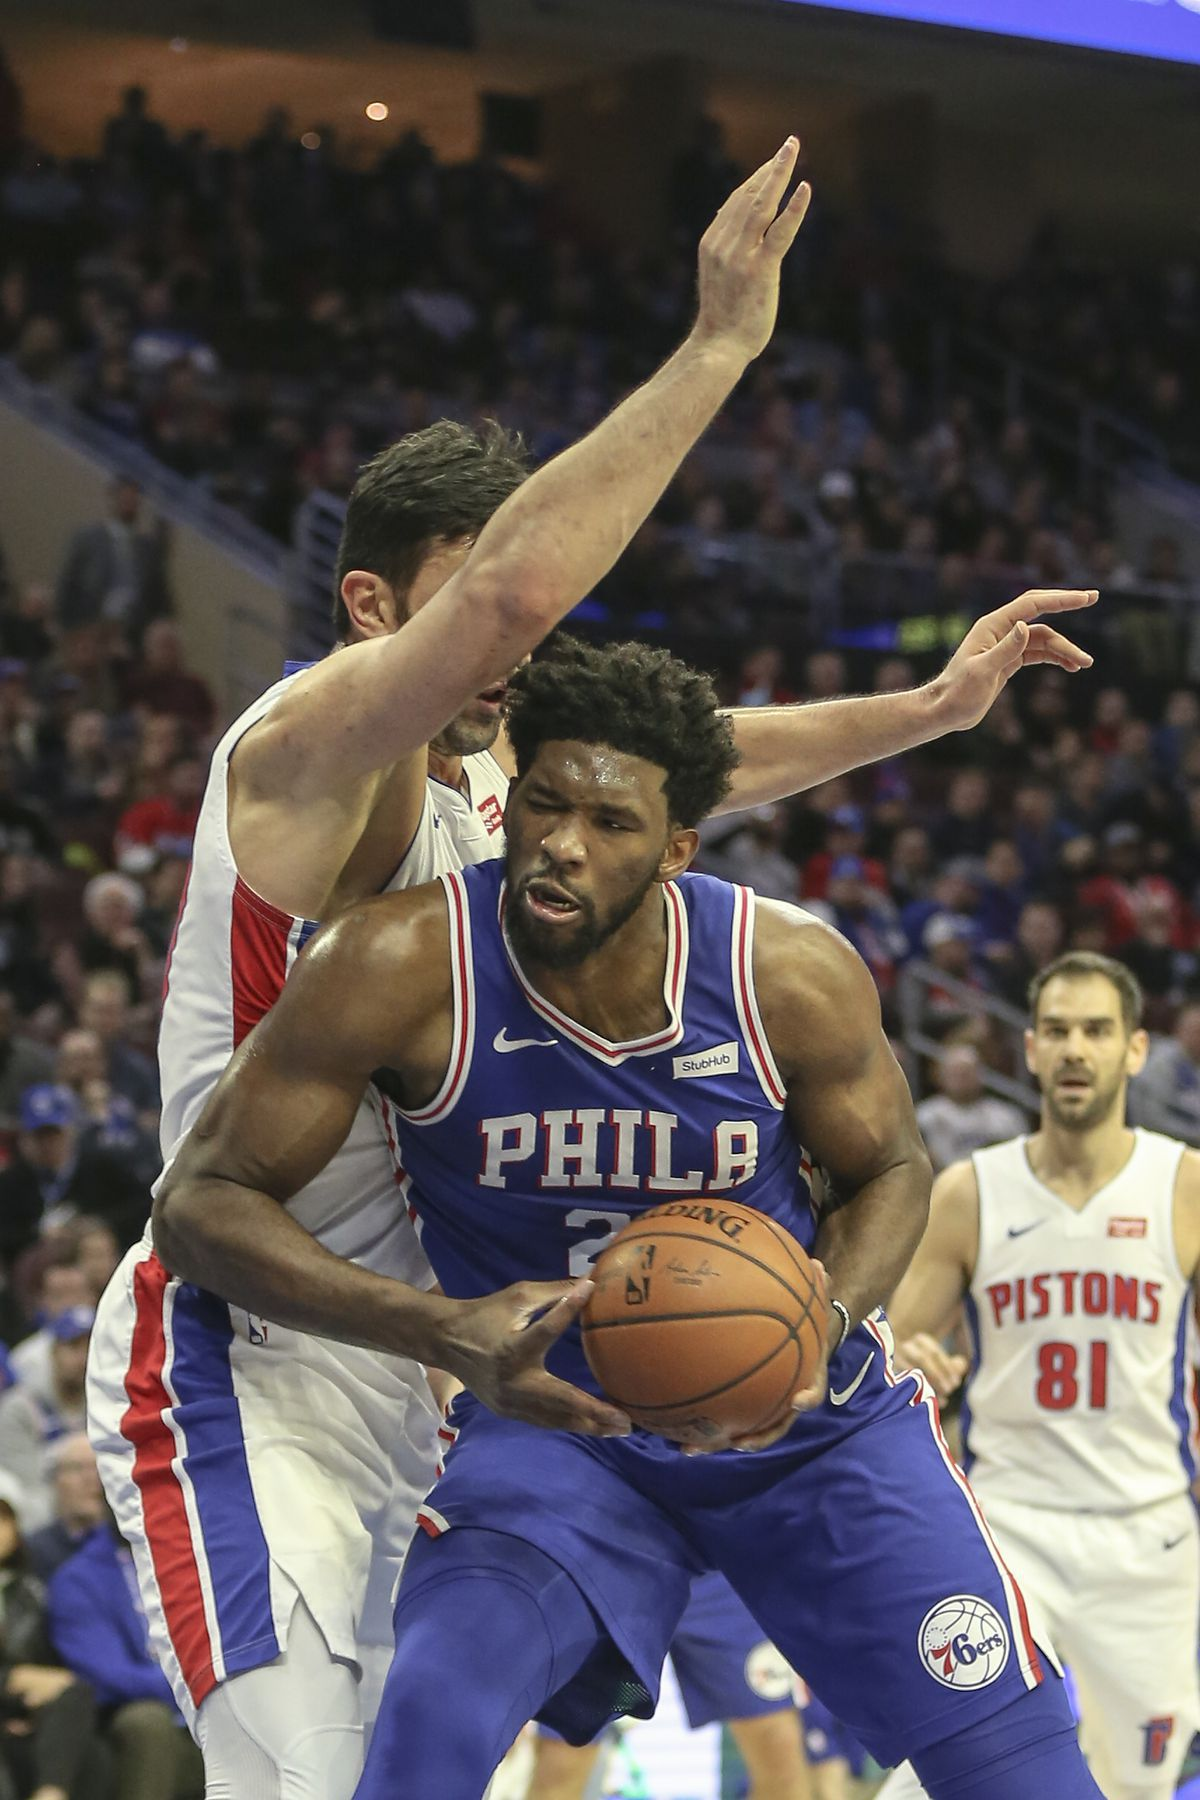 Here's why Joel Embiid's frustration with his role matters | David Murphy